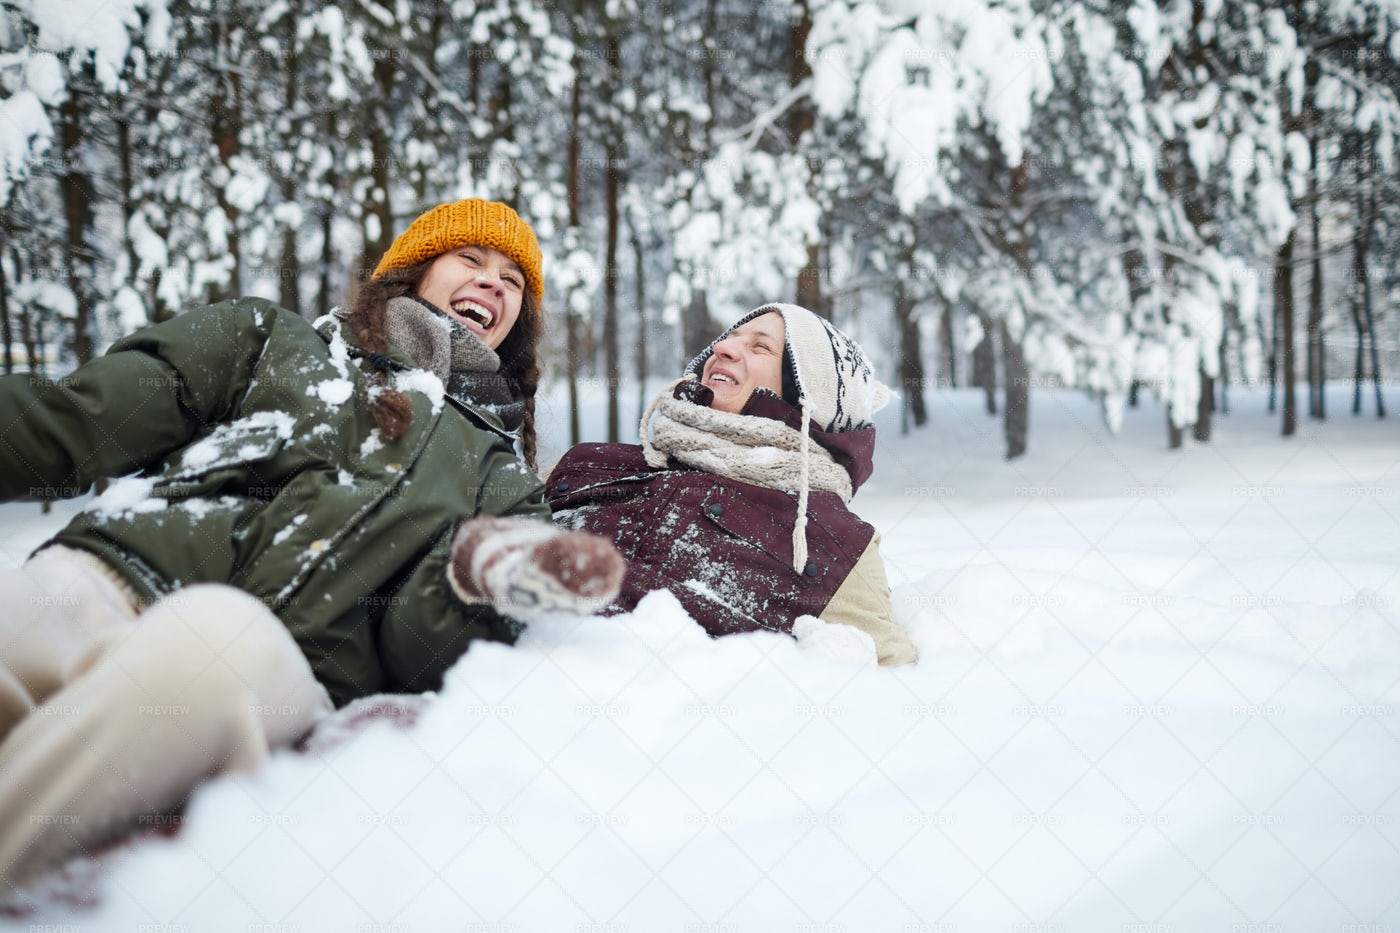 Couple Playing In Snow: Stock Photos